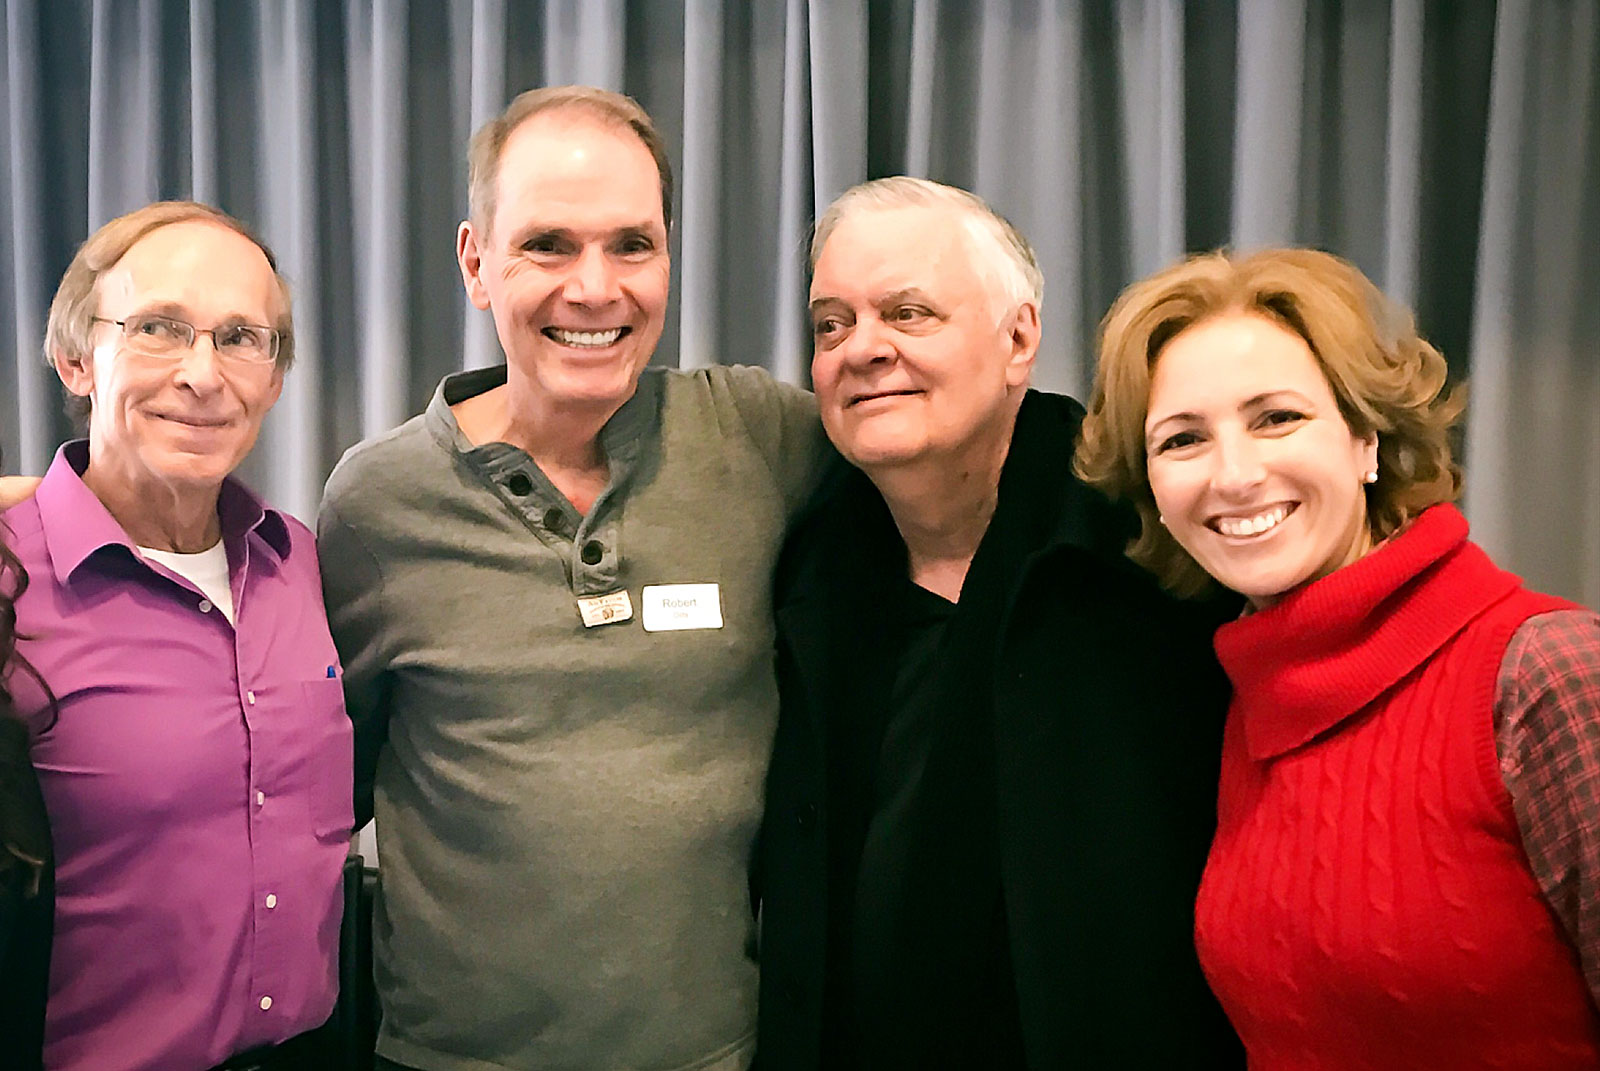 Rita Aleluia com Robert Dilts e outos, durante o NLP Leadership Summit